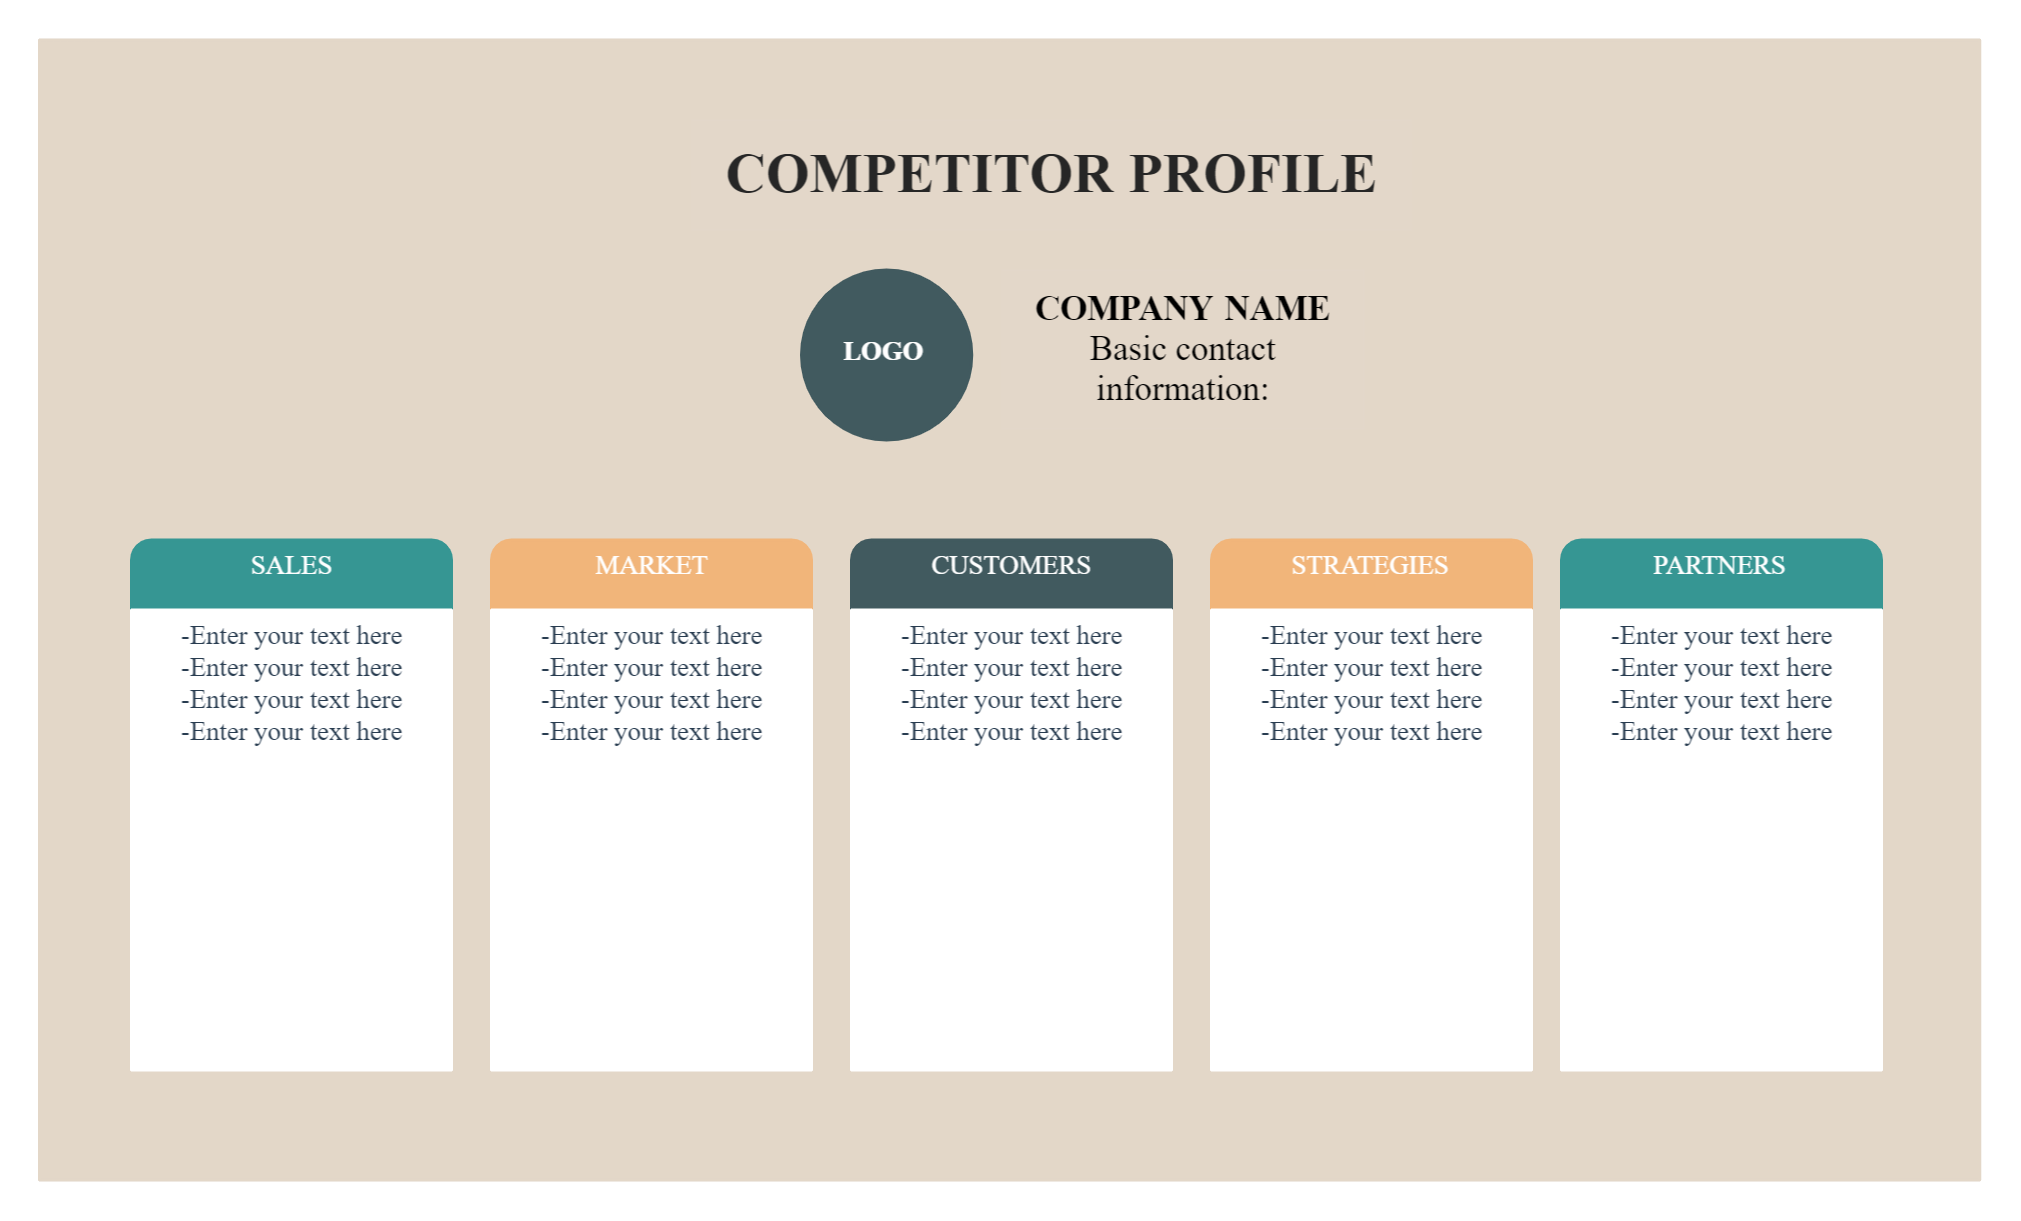 Competitor Profile Template for Business Plan in 2020